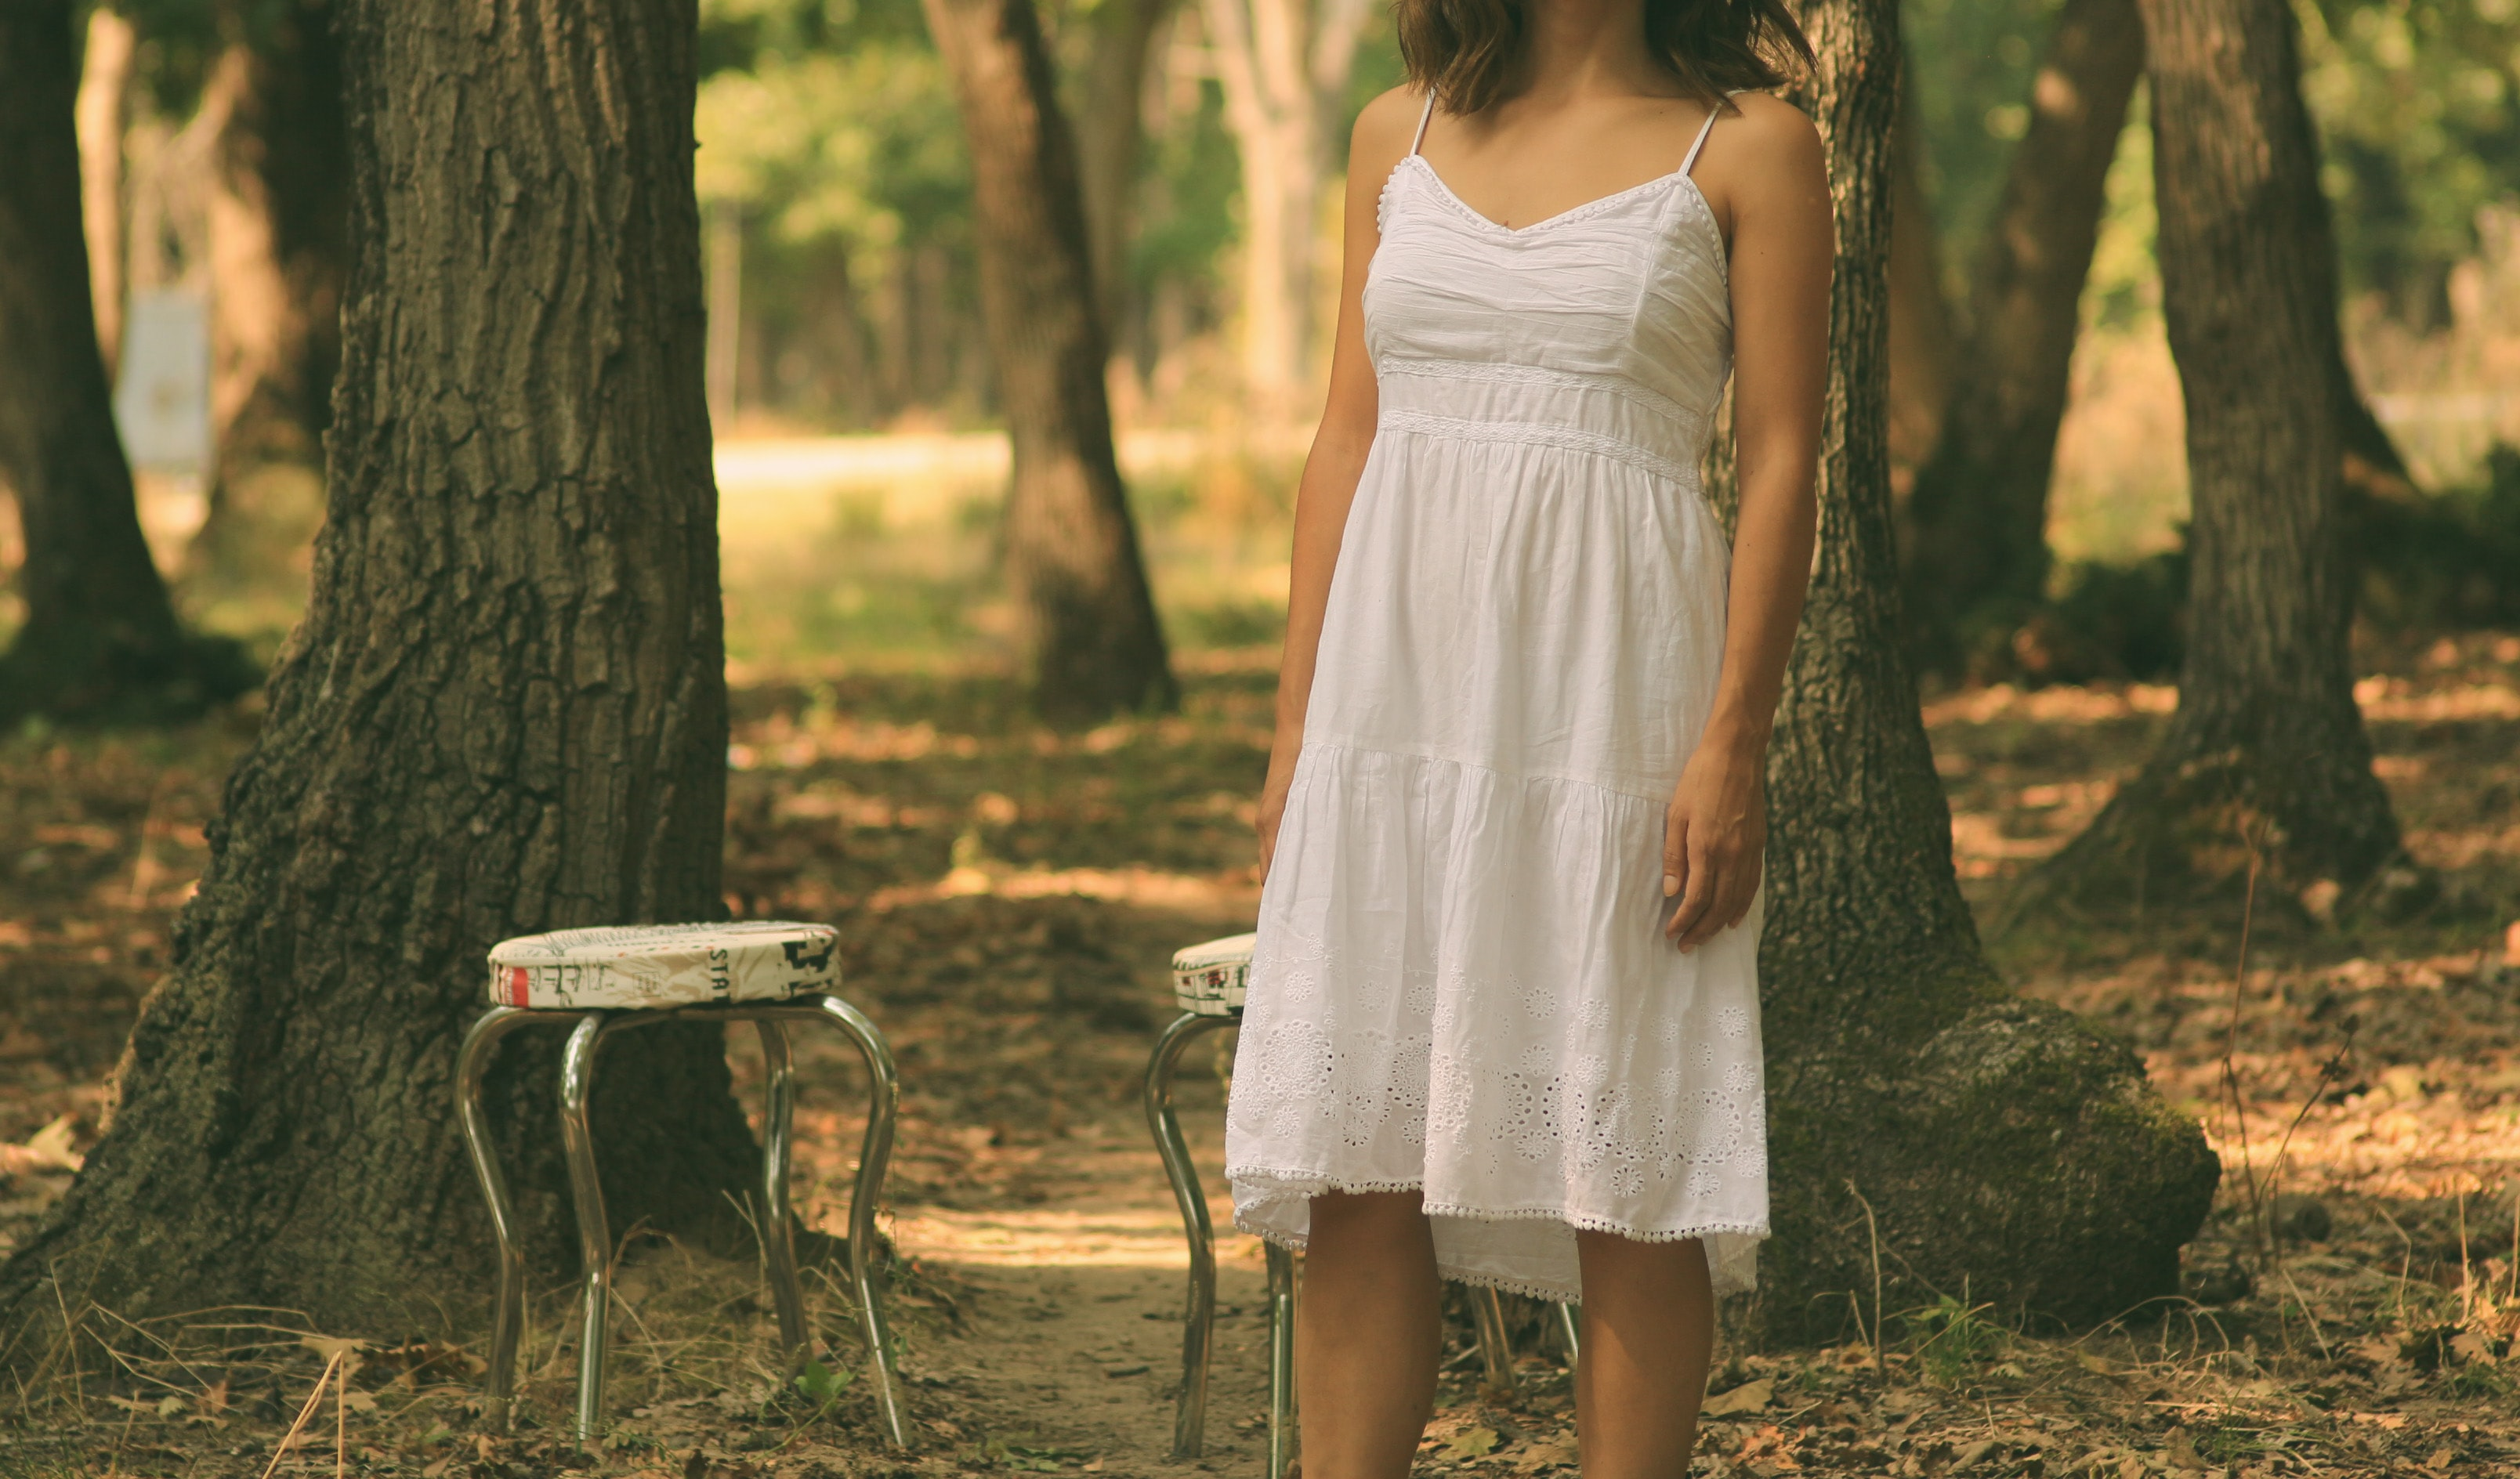 woman in white spaghetti strap dress standing in front of white stool